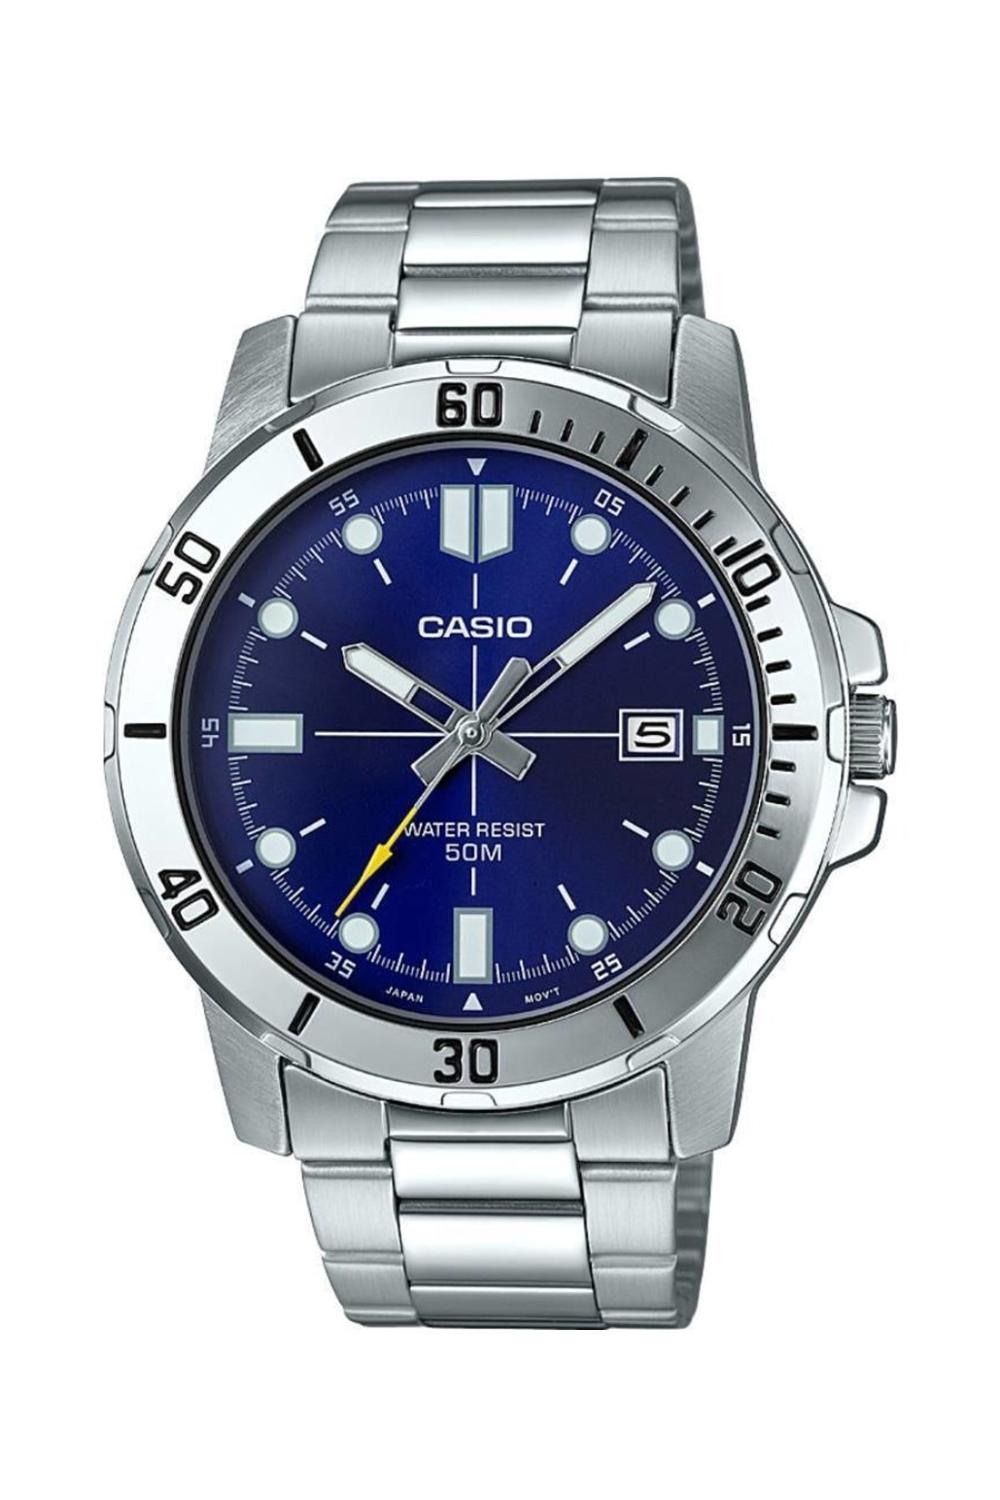 Casio Watch Men Brand Luxury 50 M.  Waterproof Chronograph Fashion Sport Military Watch  MTP-VD01D-2EVUDF